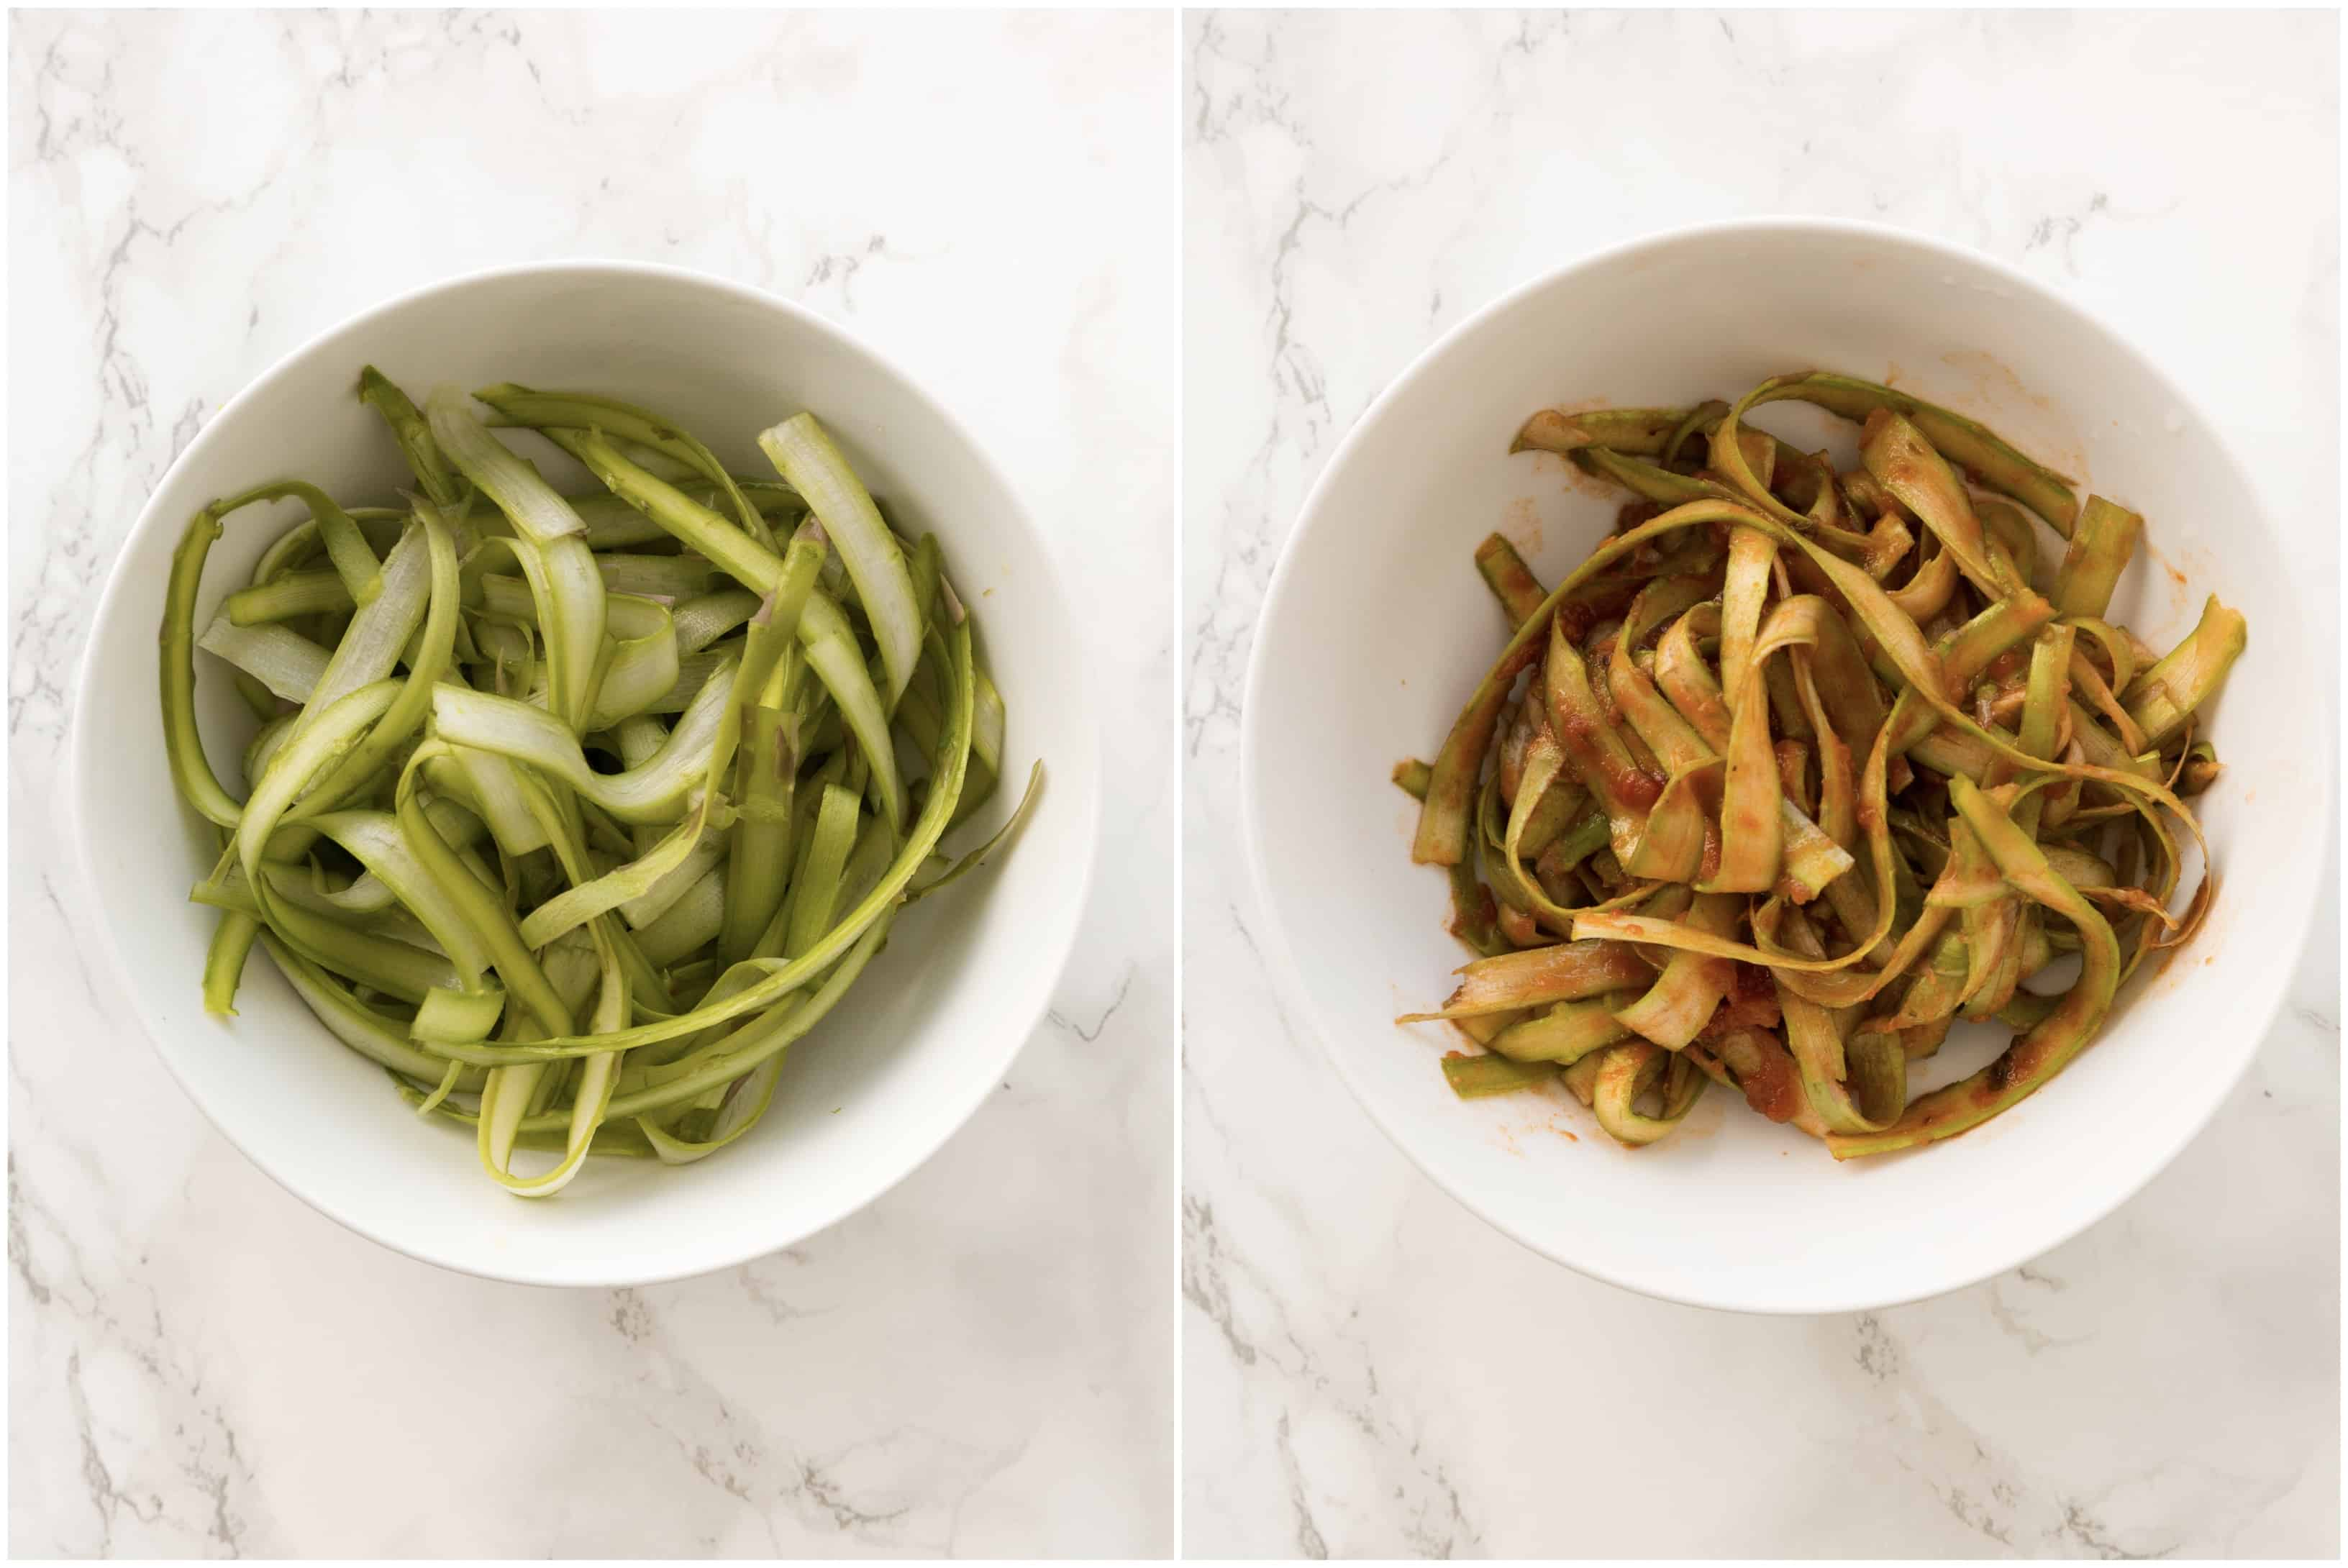 6 Healthy Pasta Alternatives - Asparagus Noodles